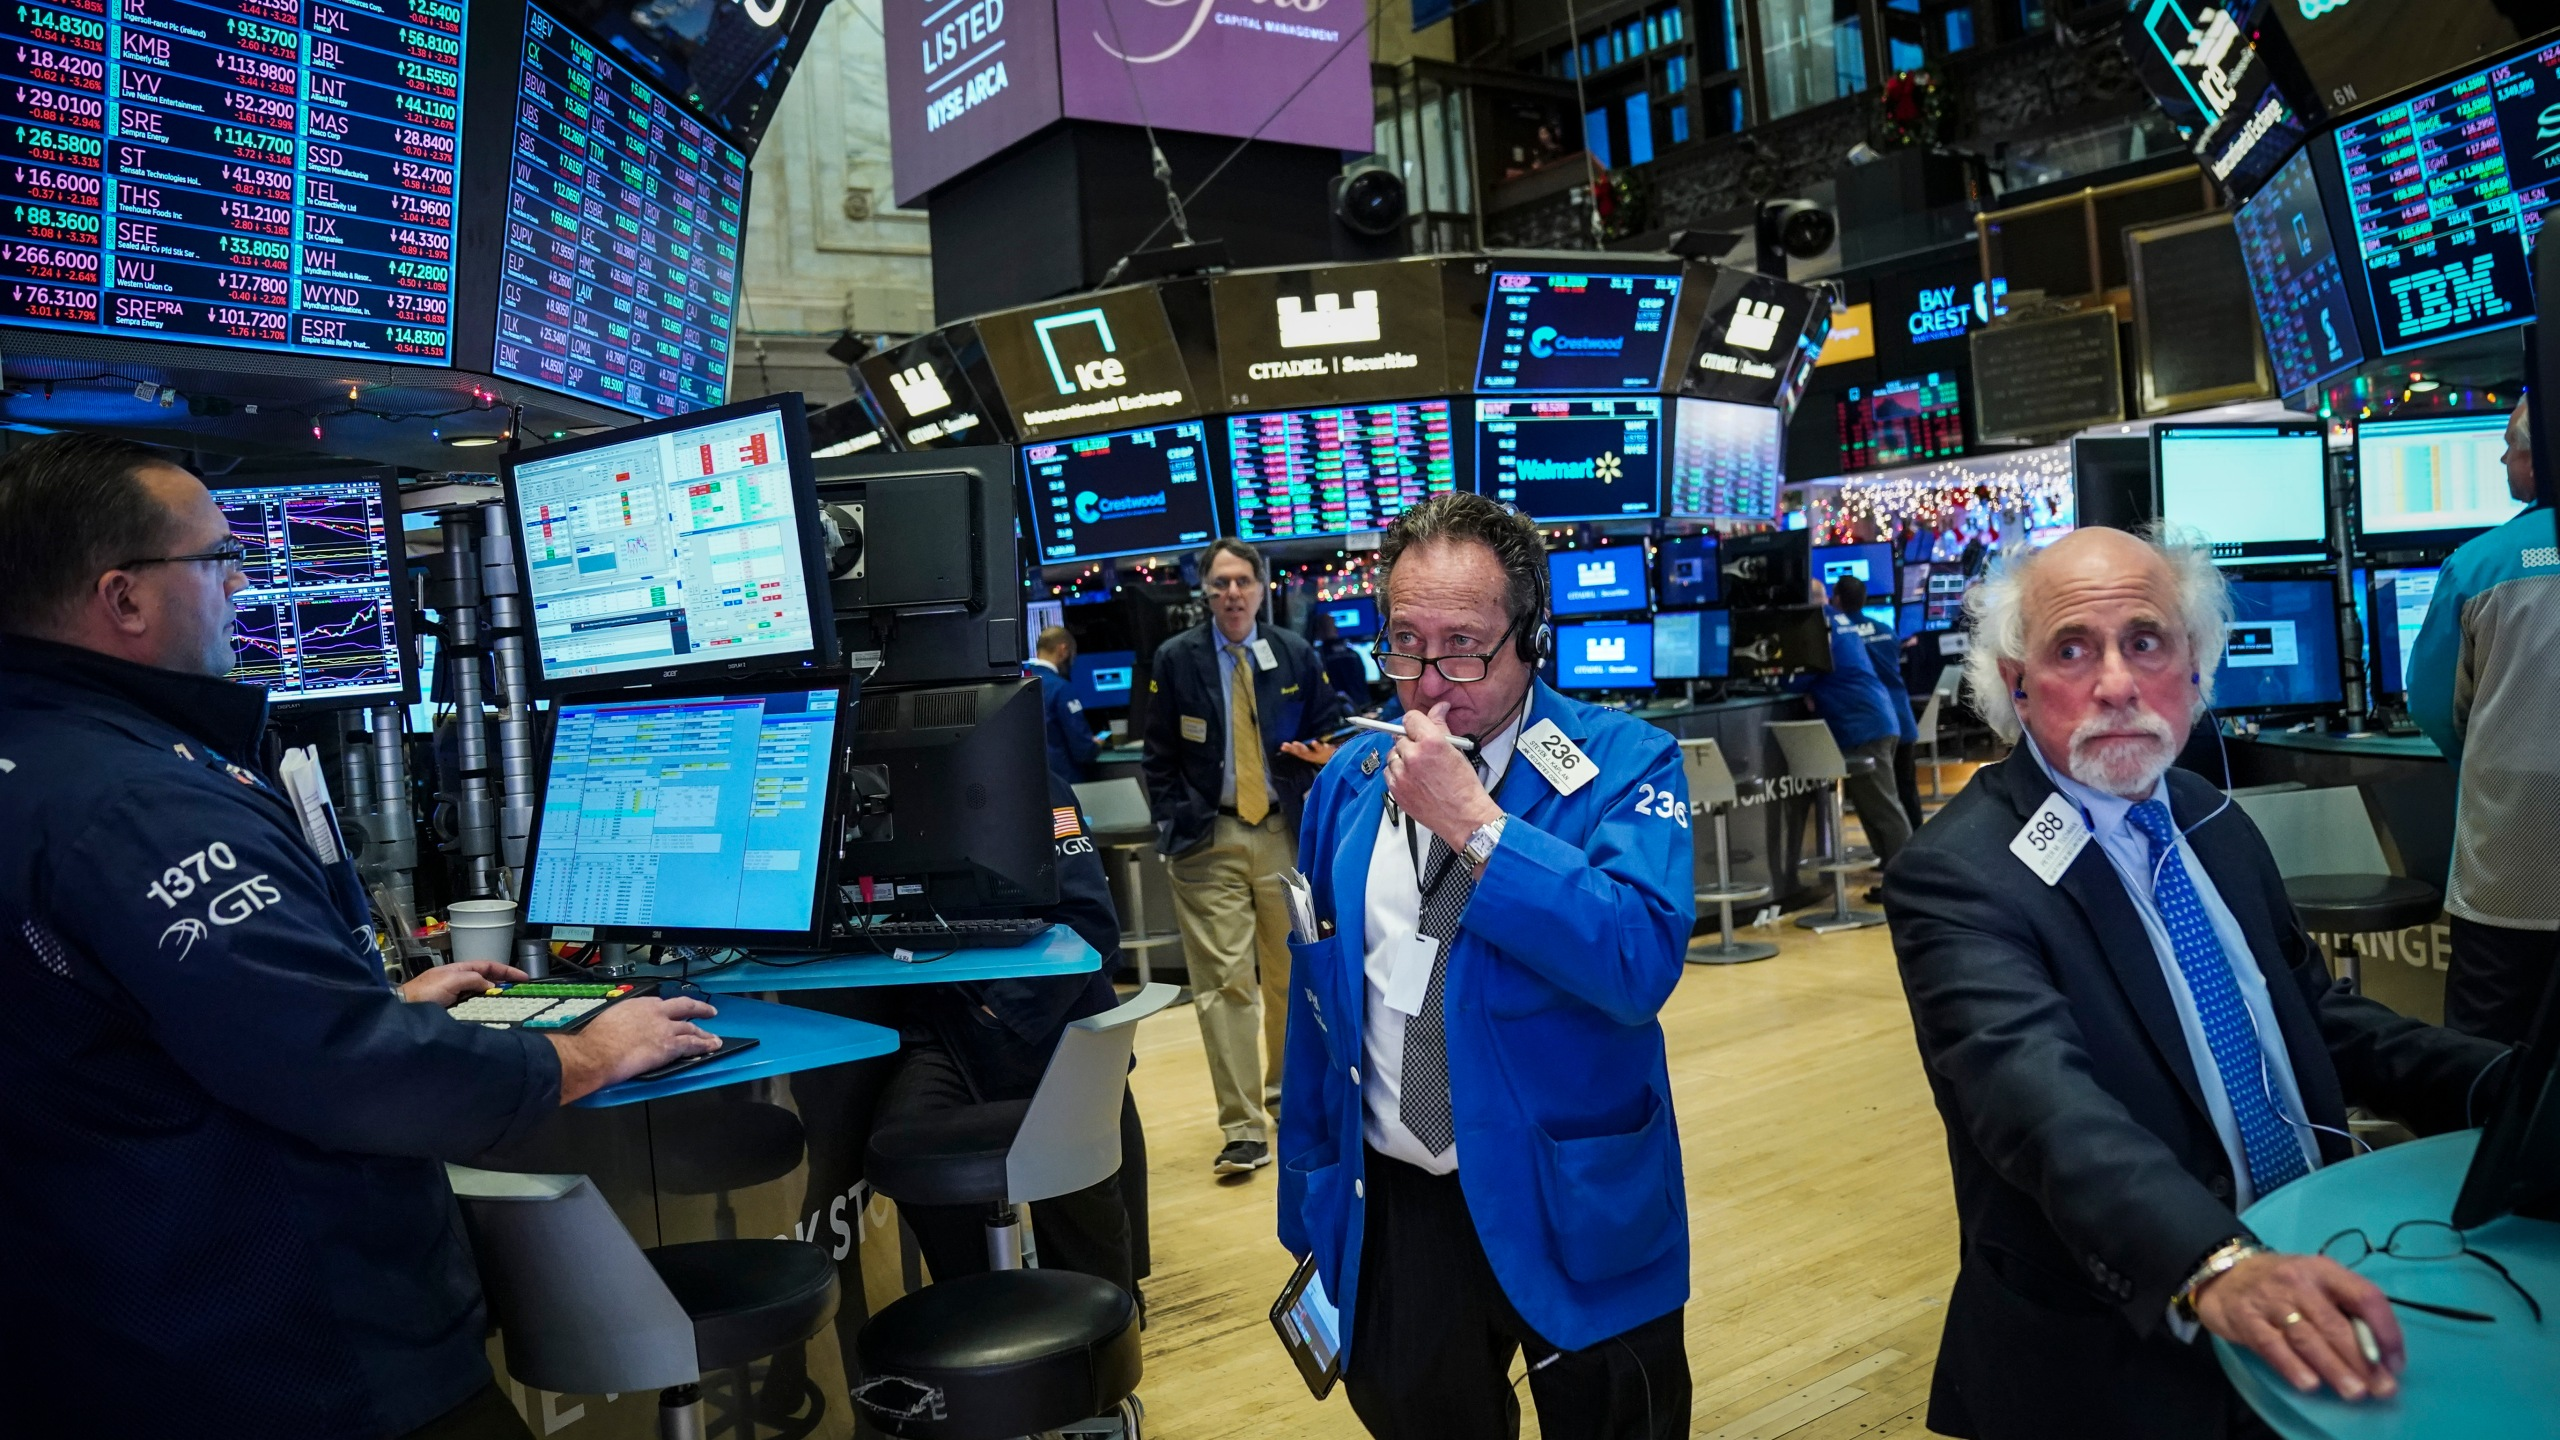 Traders and financial professionals work ahead of the closing bell on the floor of the New York Stock Exchange (NYSE), December 17, 2018 in New York City. (Credit: Drew Angerer/Getty Images)